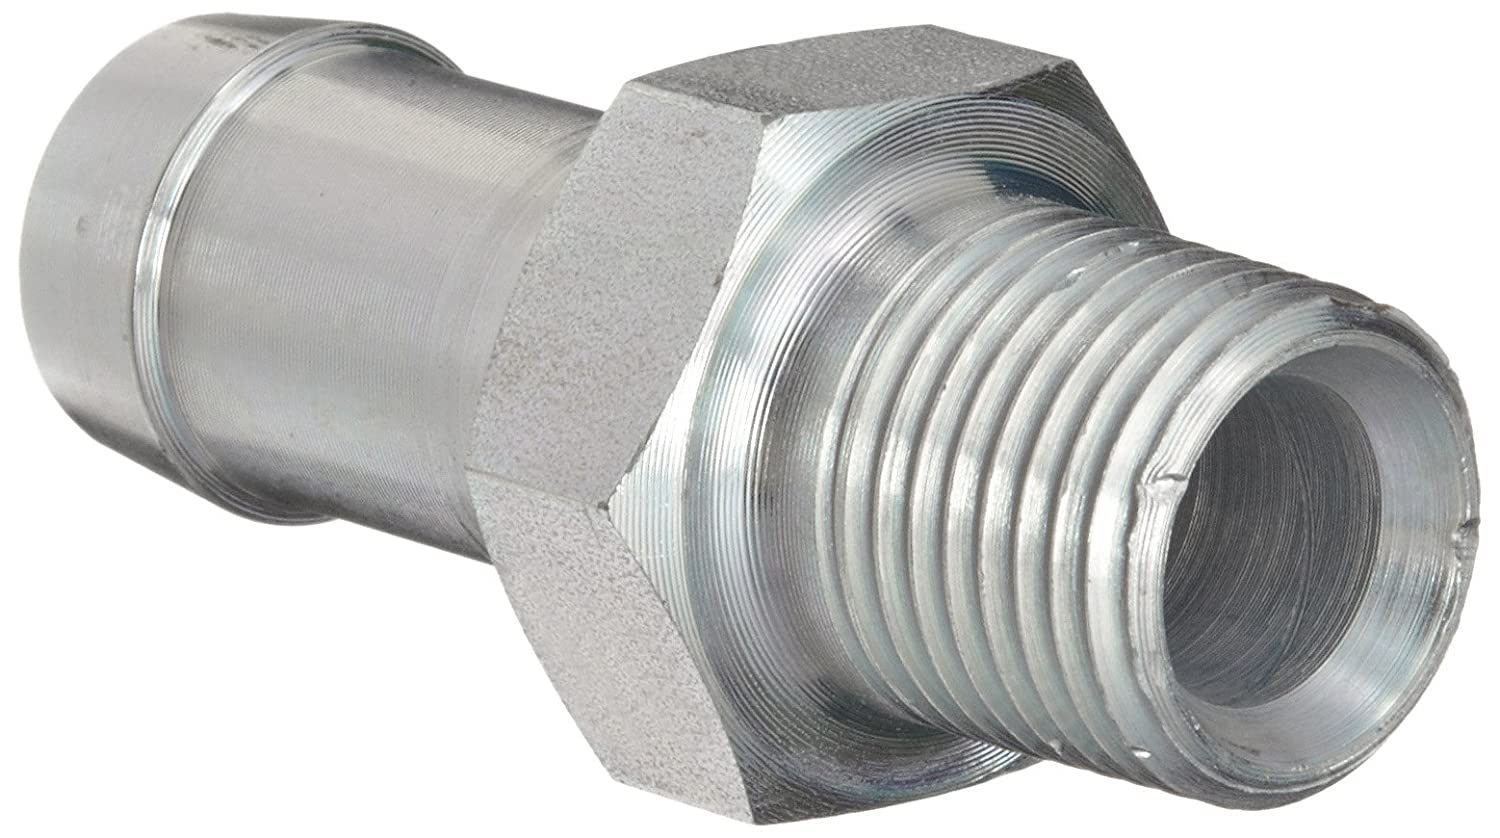 Dixon KHN321 King Plated Steel Shank//Water Fitting for One Clamp Hex Nipple 1//4 NPT Male x 3//8 Hose ID Barbed 1//4 NPT Male x 3//8 Hose ID Barbed Dixon Valve /& Coupling